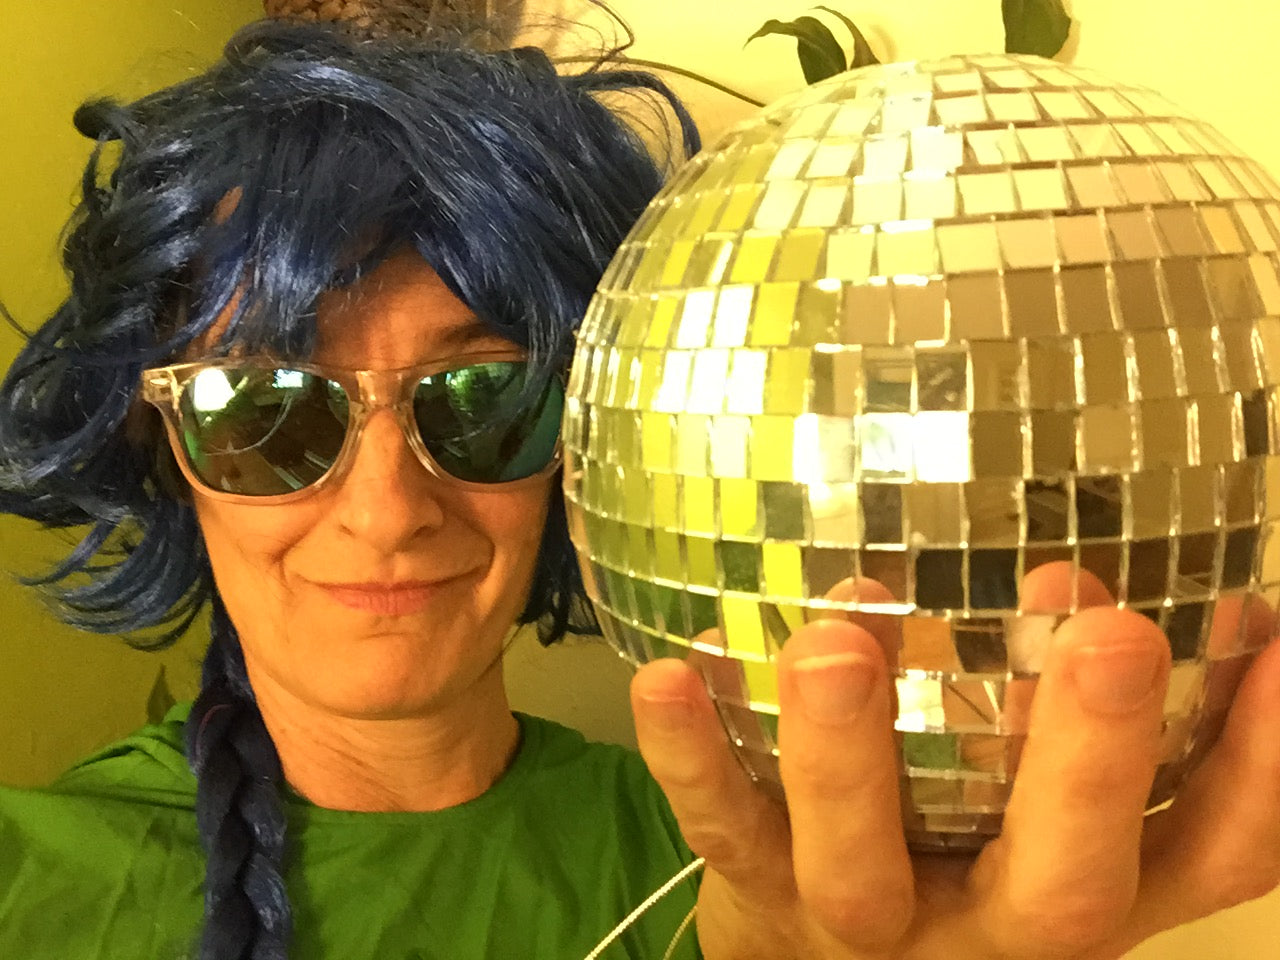 Disco ball and a crazy wig in preparation for exercise class